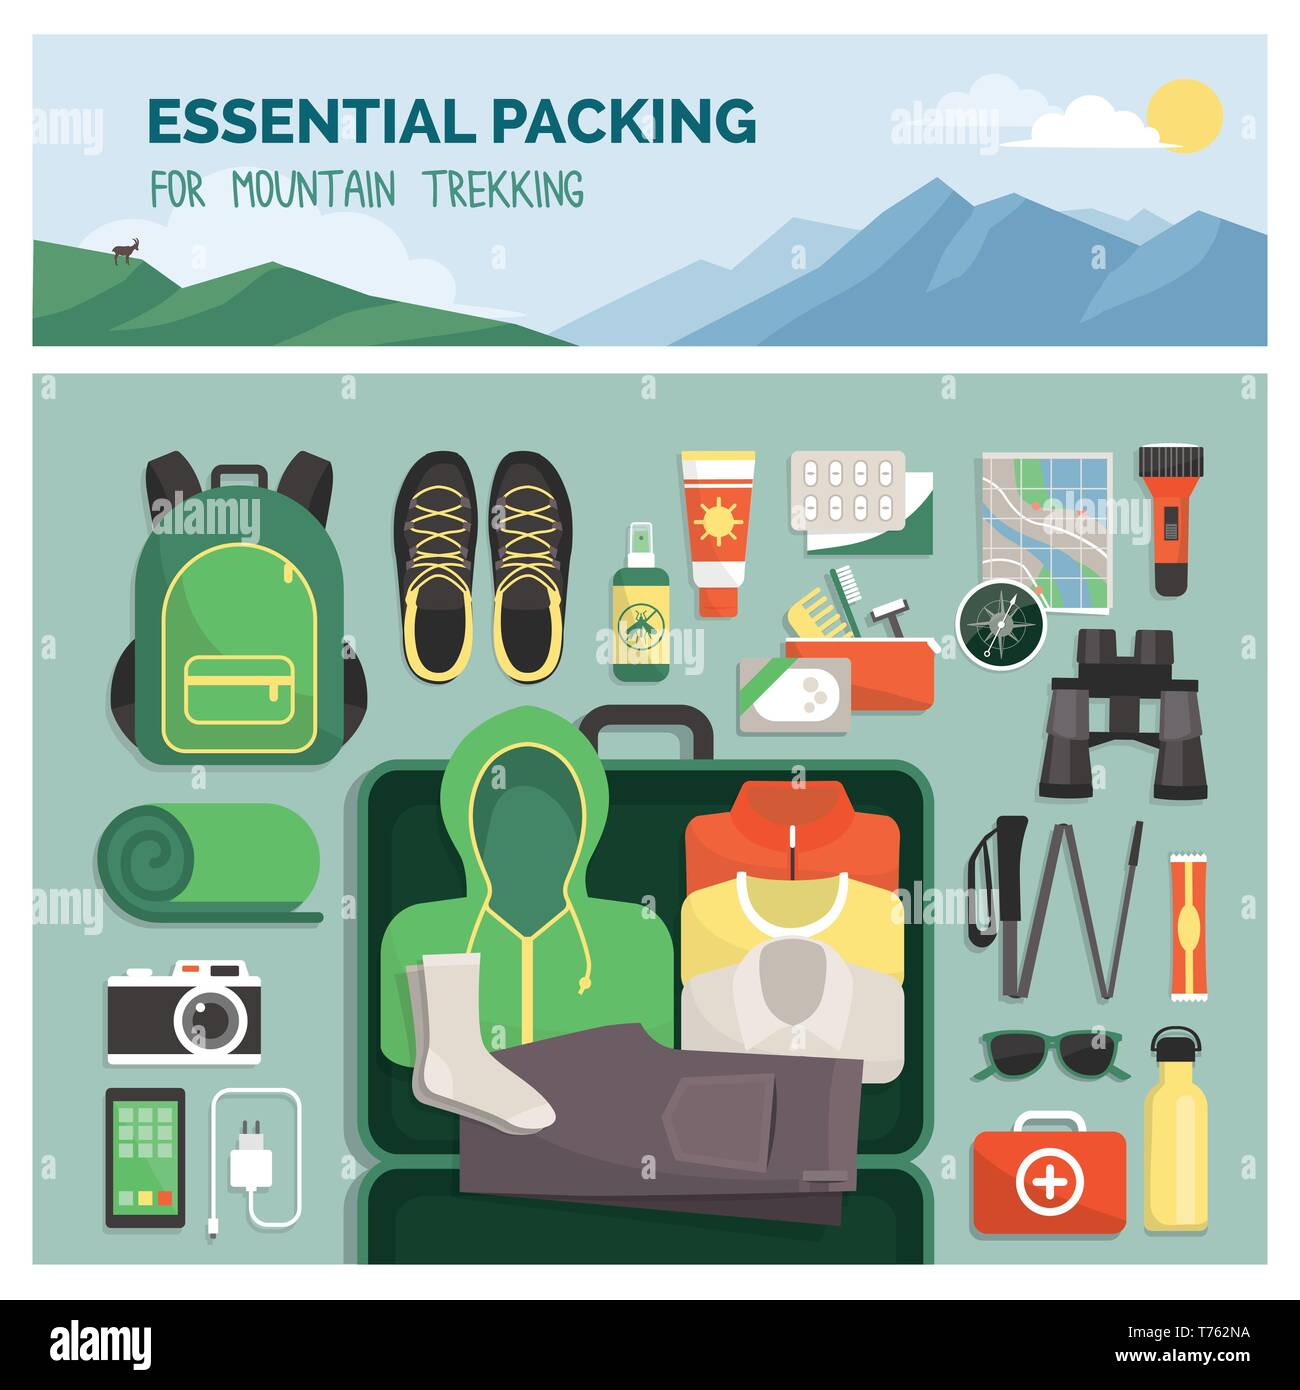 Essential packing for mountain trekking, outdoor travel and sport, clothes and accessories top view - Stock Image